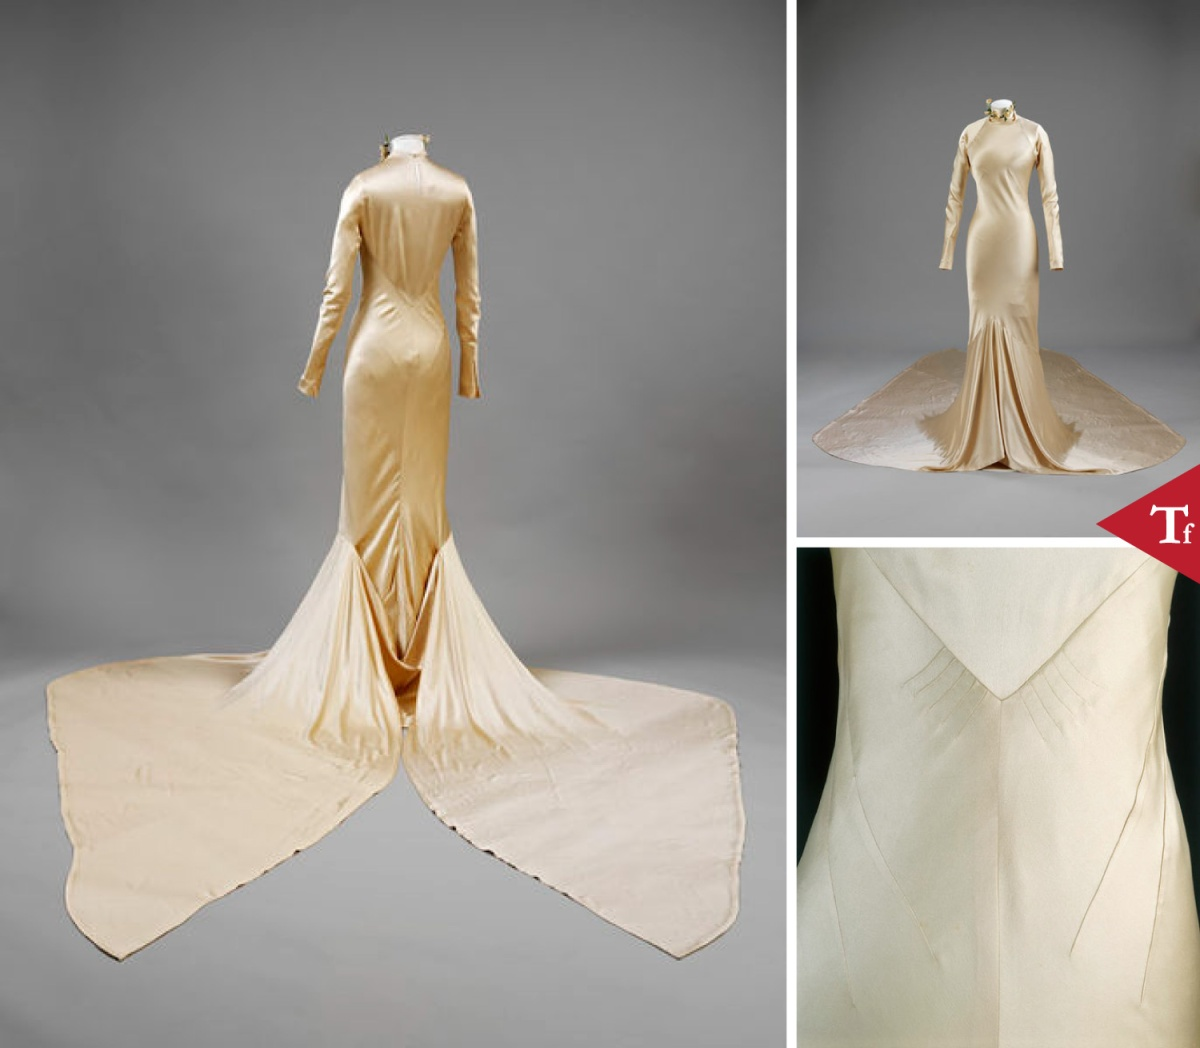 #ThrowbackFashion Wedding dress of silk satin by Charles James, England, 1934